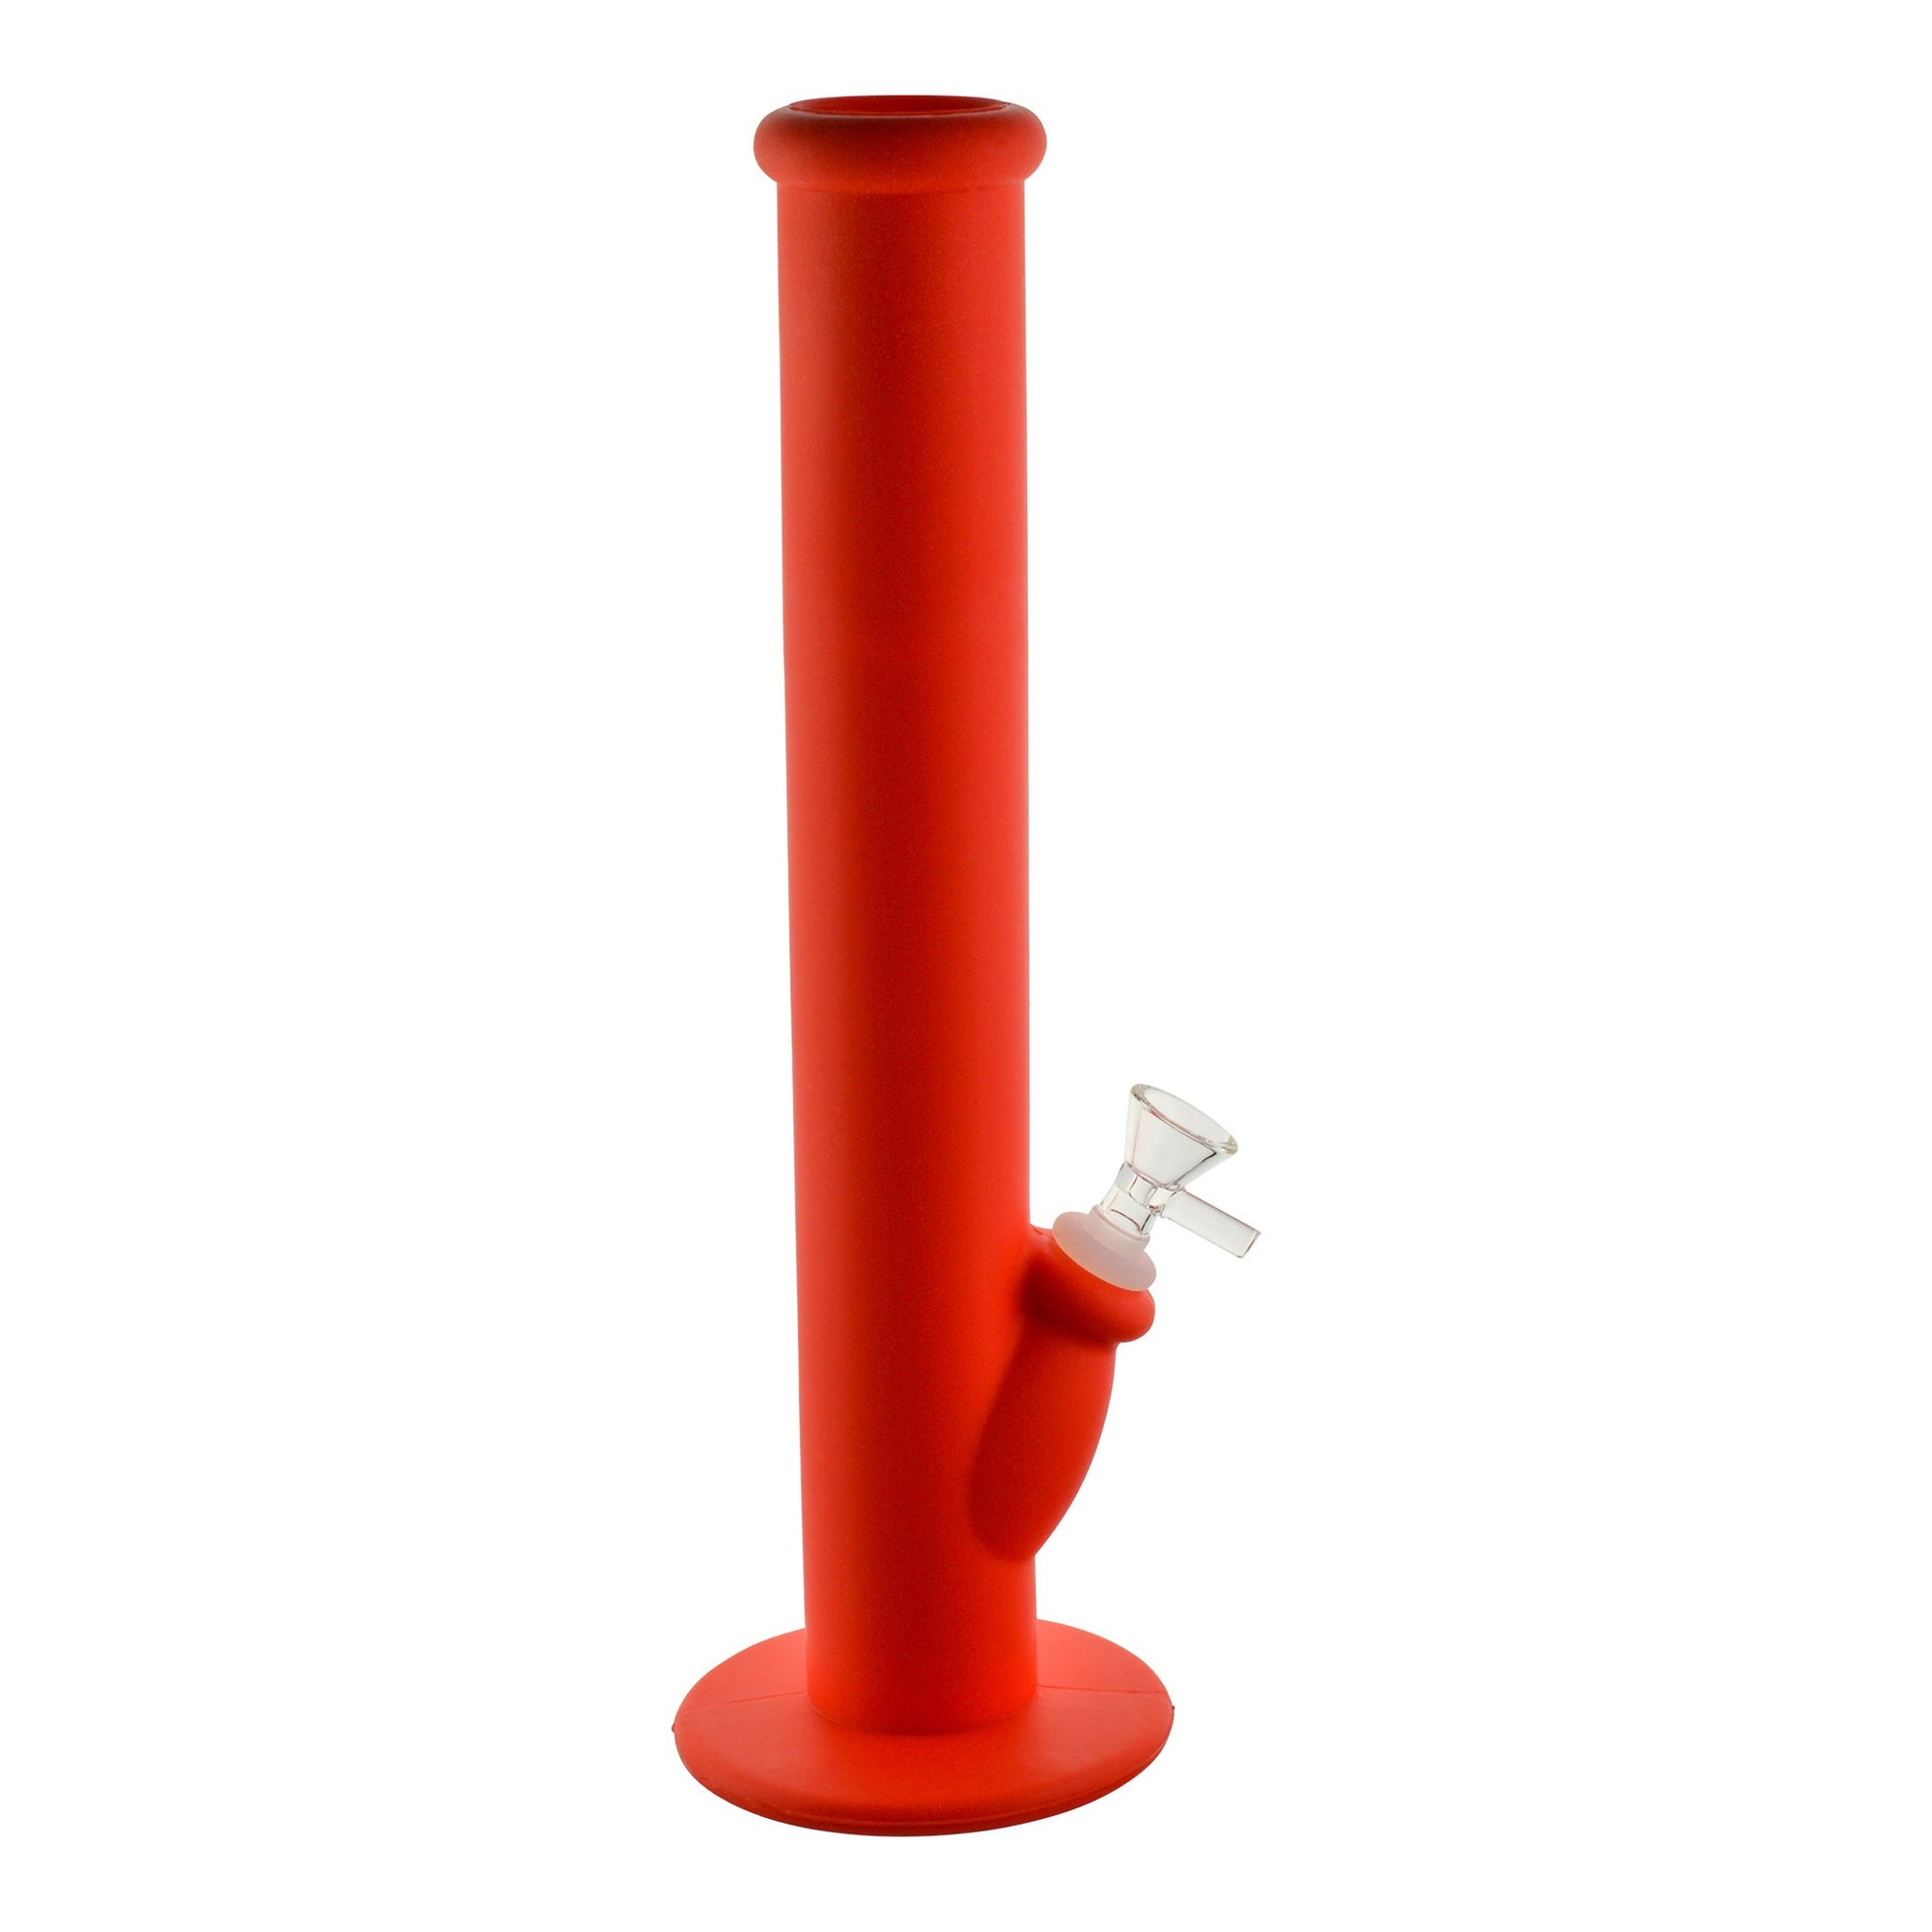 Unique 14.5 inch straight shooter silicone bong smoking device in full bright red color clear glass bowl on right